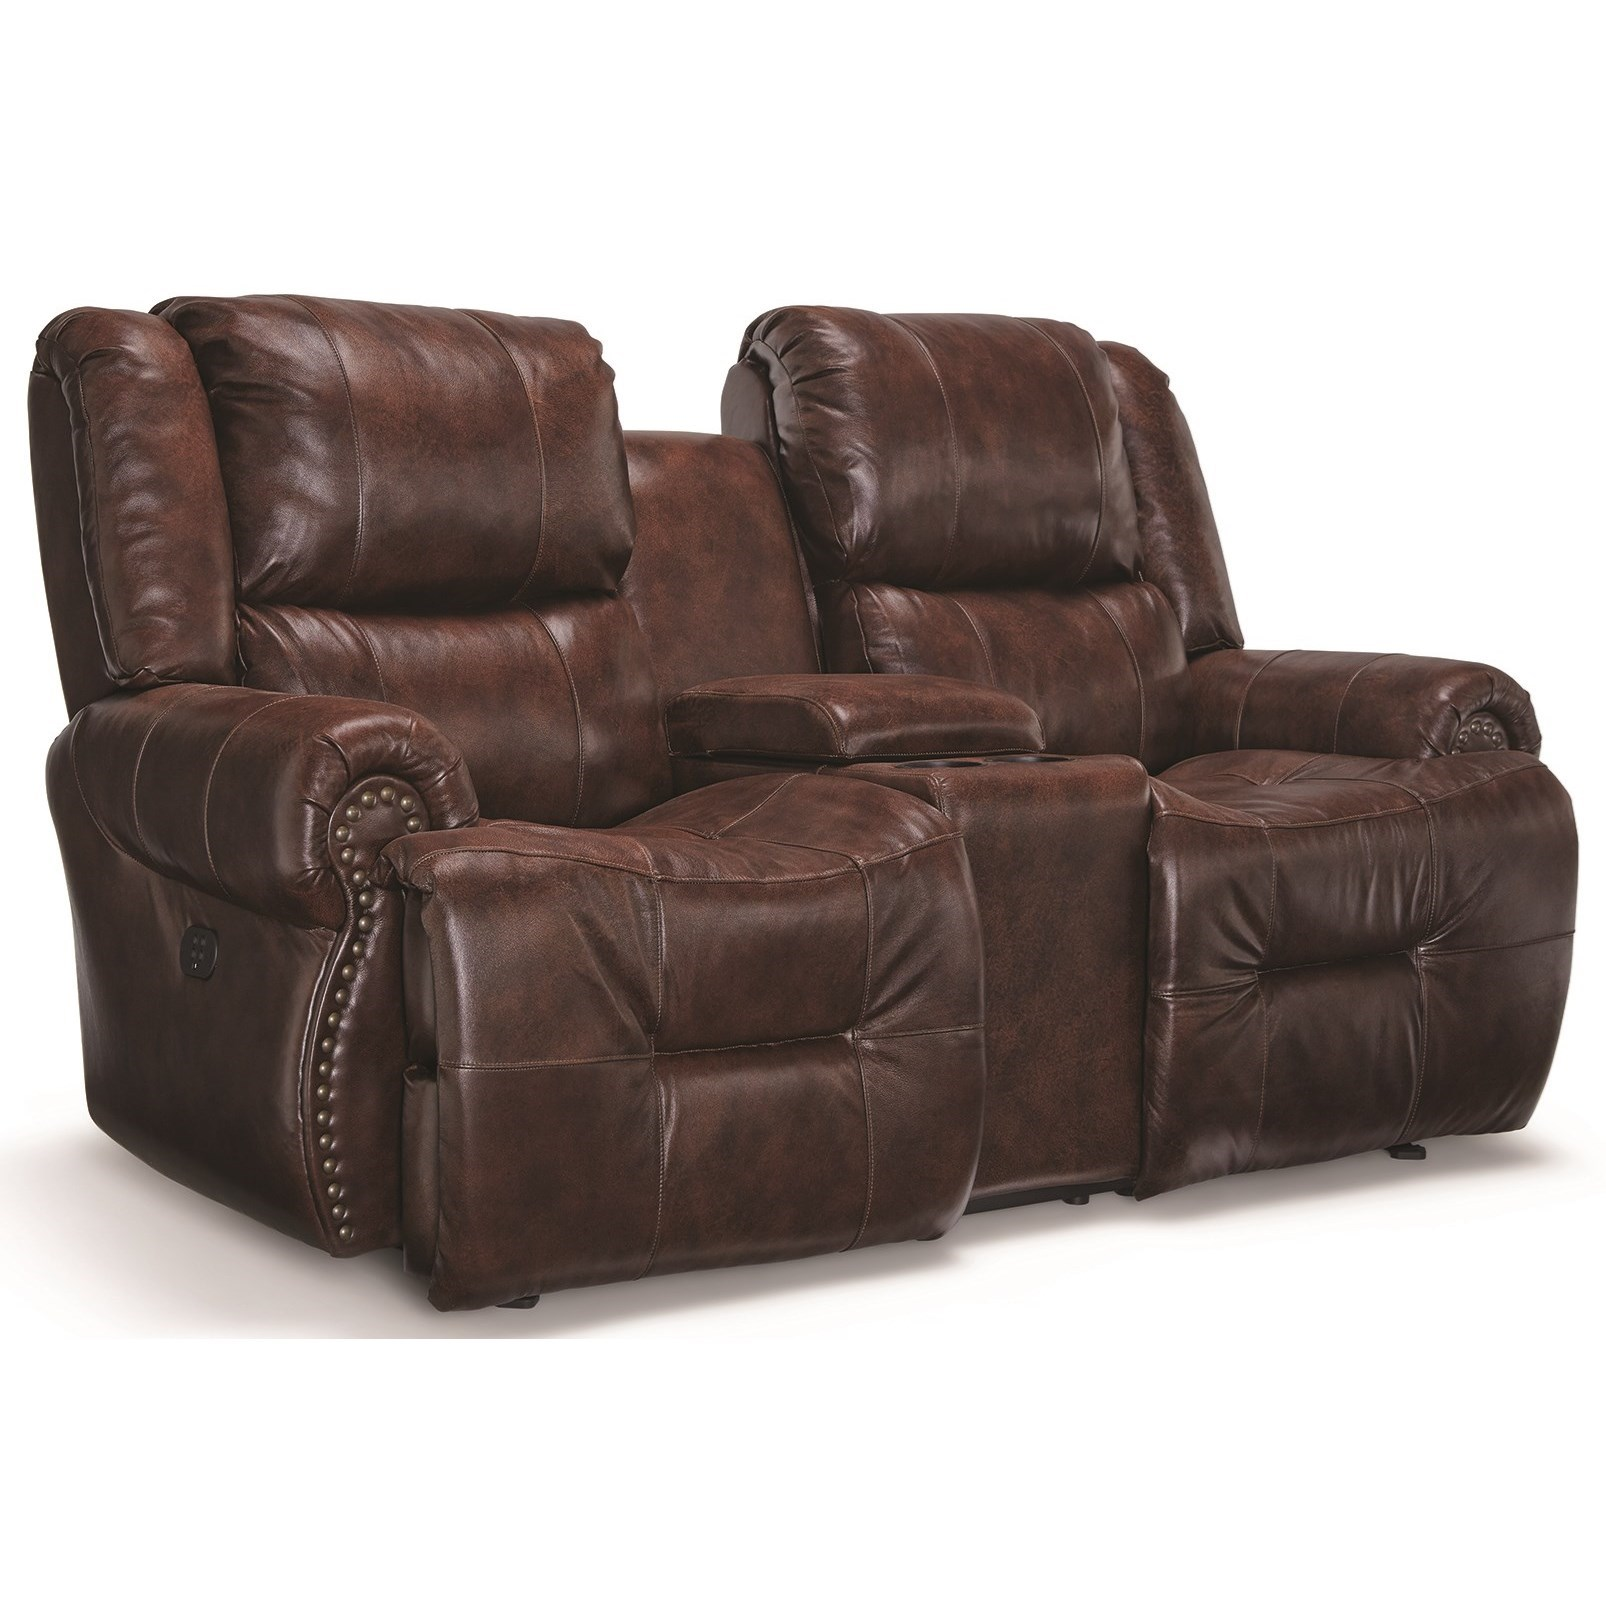 Genet Rocking Reclining Console Loveseat by Best Home Furnishings at Baer's Furniture